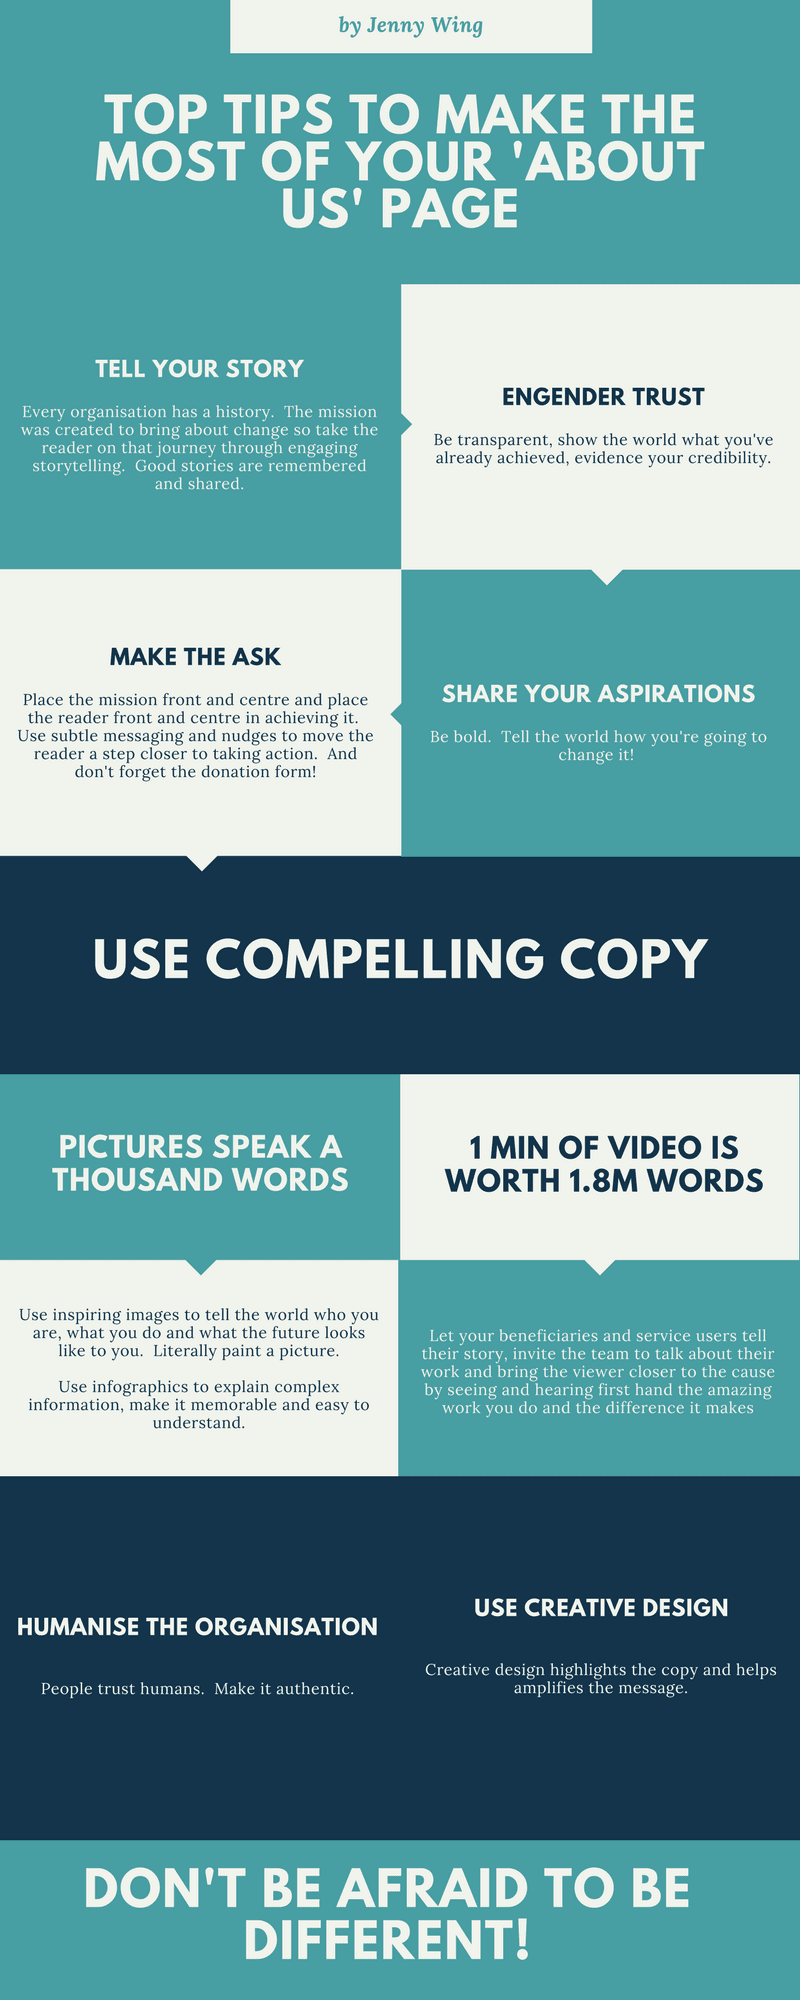 Making the best use of the About Us page infographic